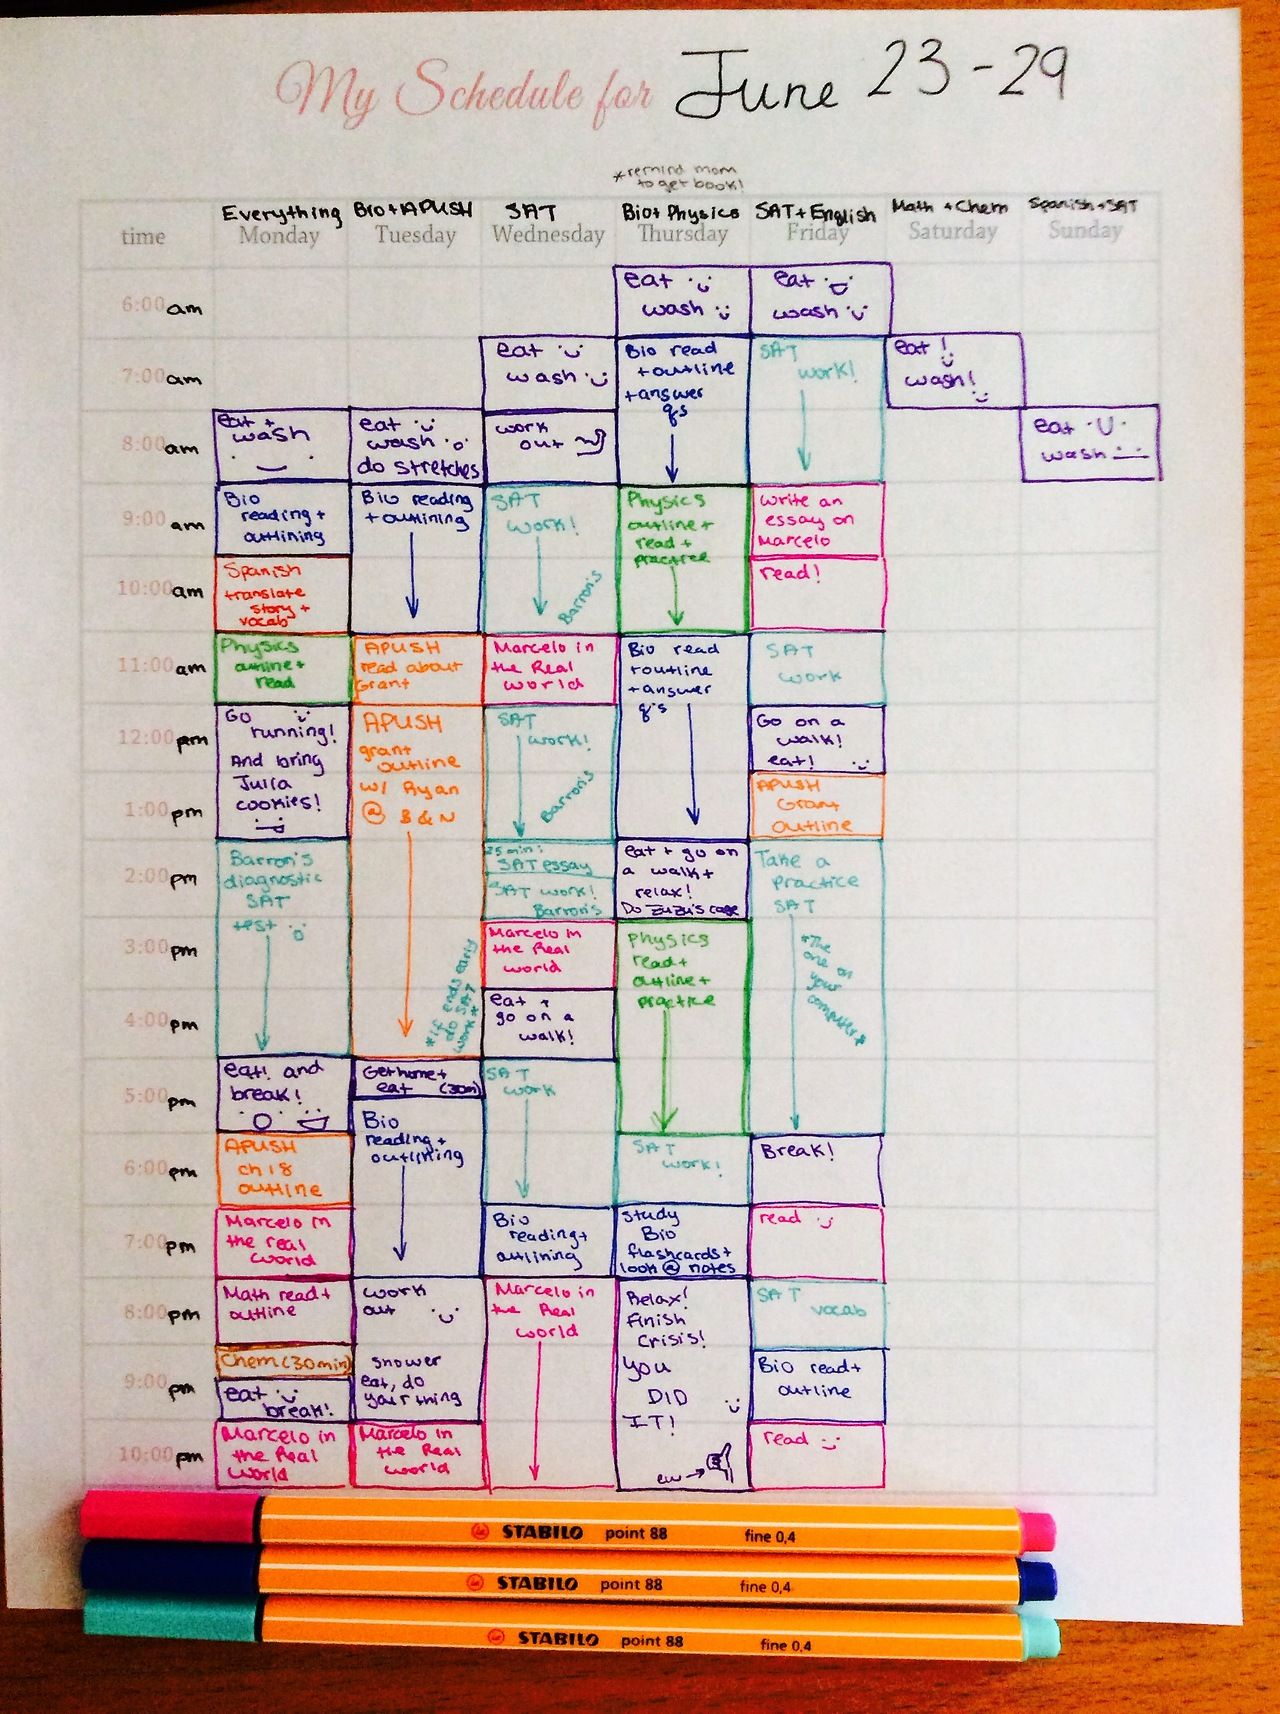 The 8-Hour Day College Time Management Schedule